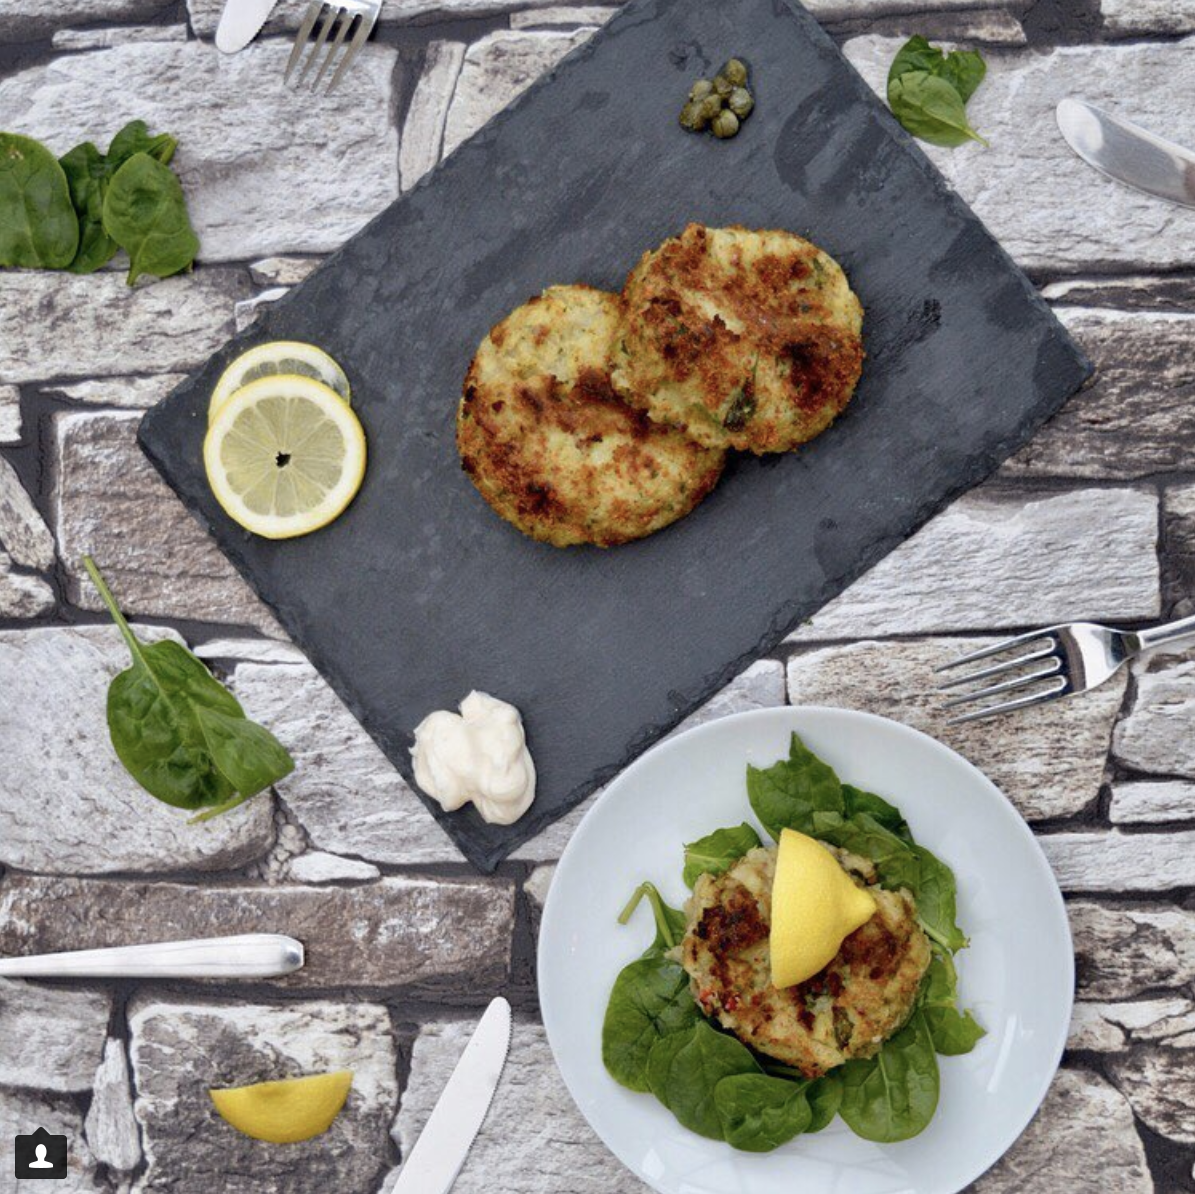 Simple Fishcake Recipe | Healthy Tasty Food | Elle Blonde Luxury Lifestyle Destination Blog